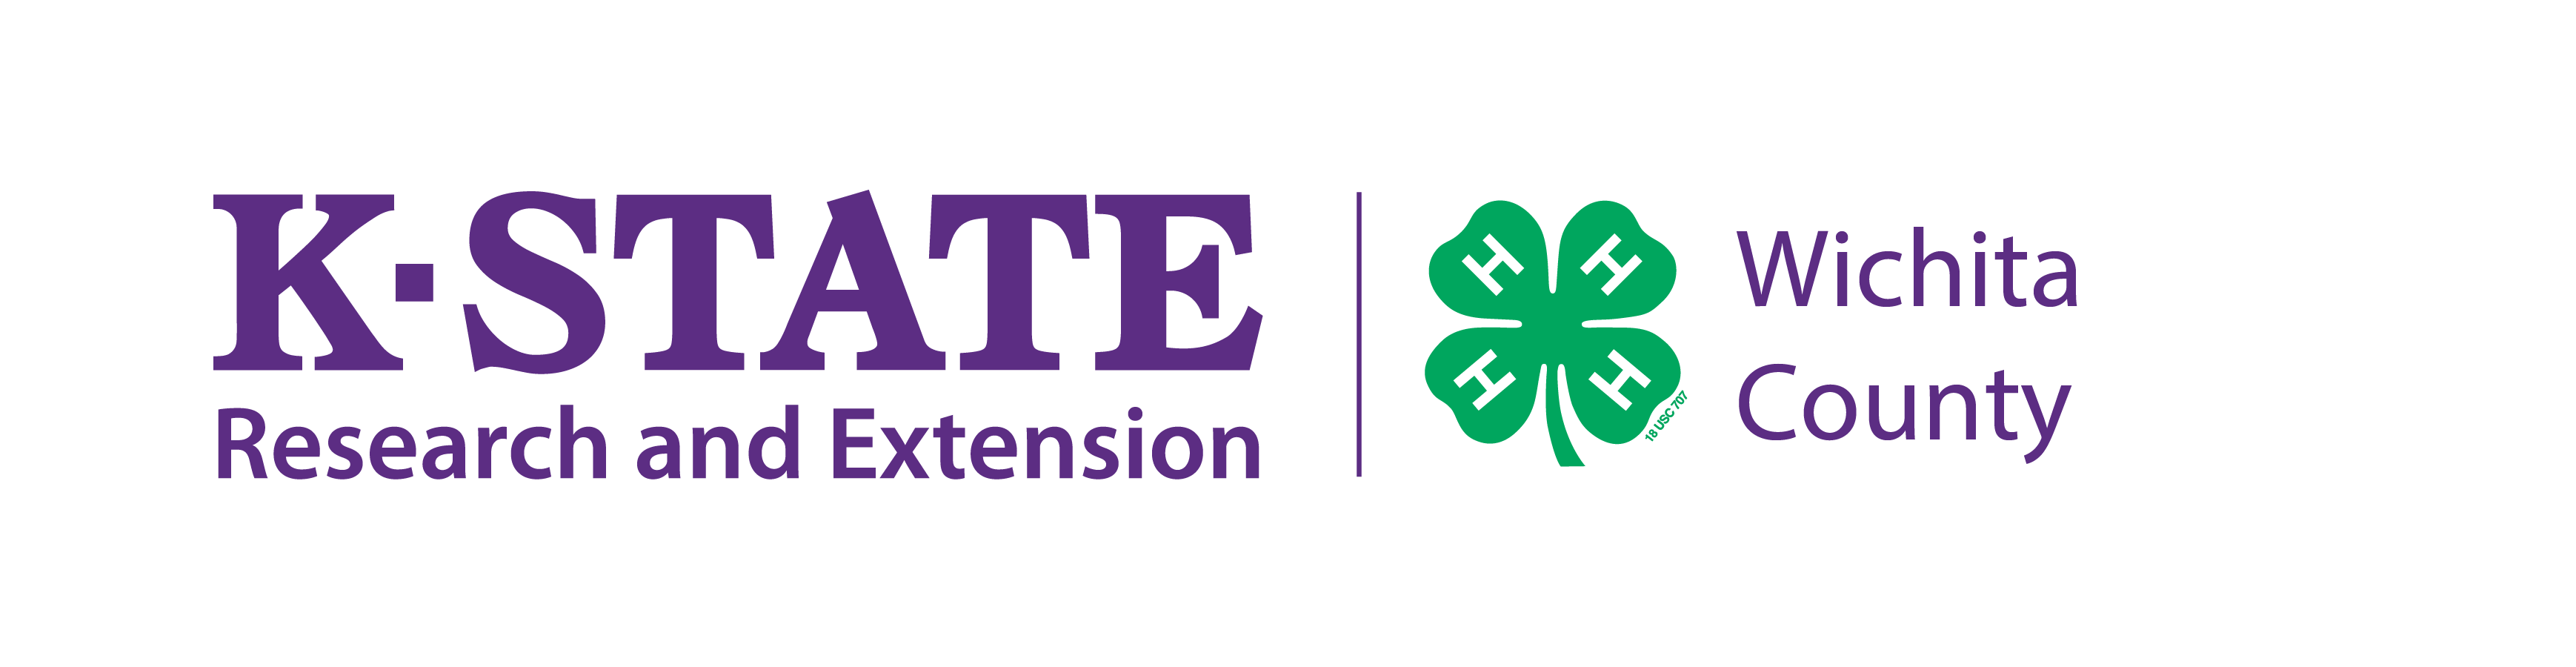 K-State Research & Extension and Clover